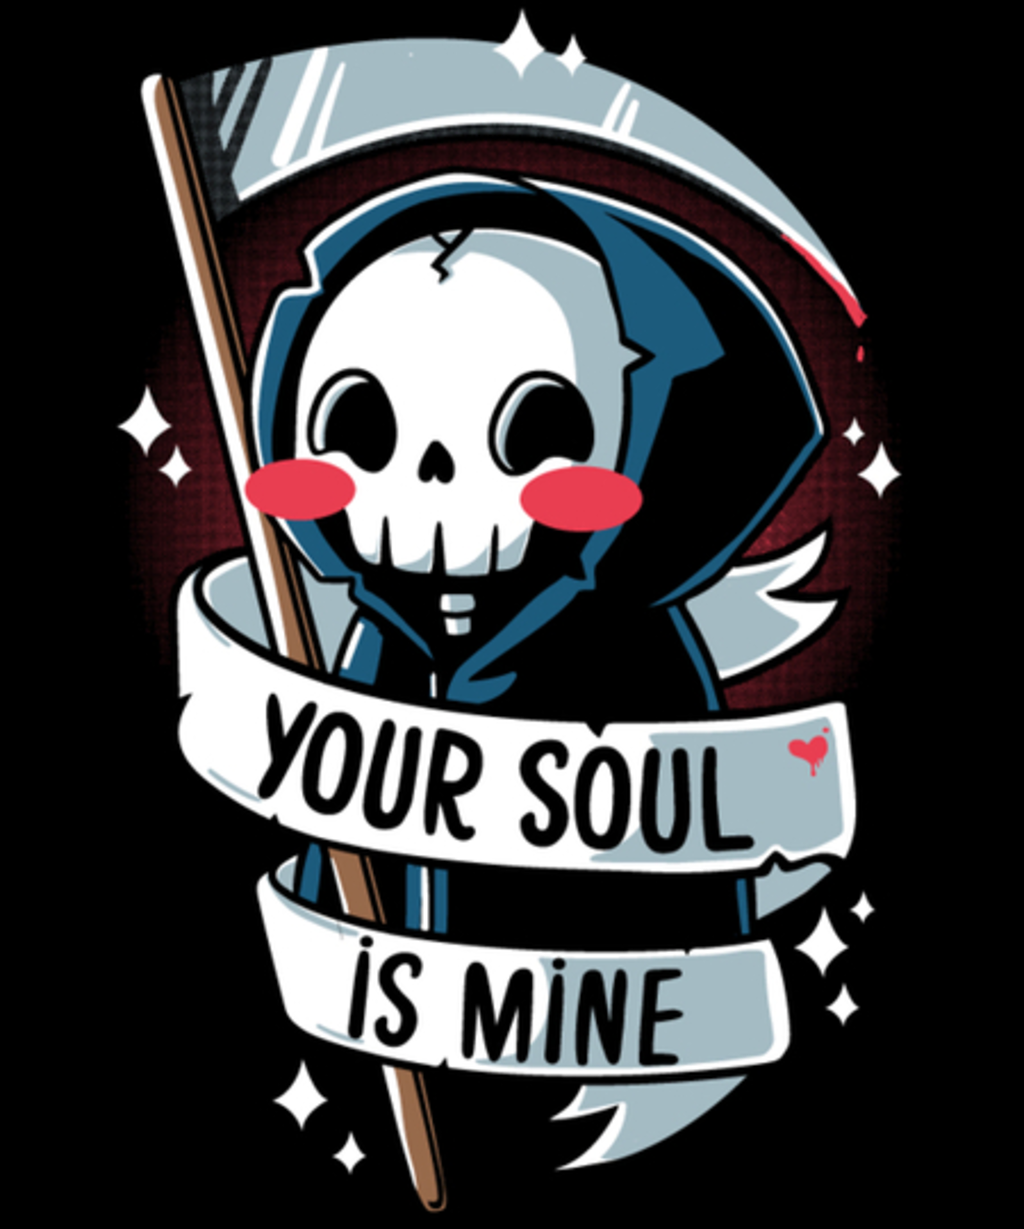 Qwertee: Your soul is mine